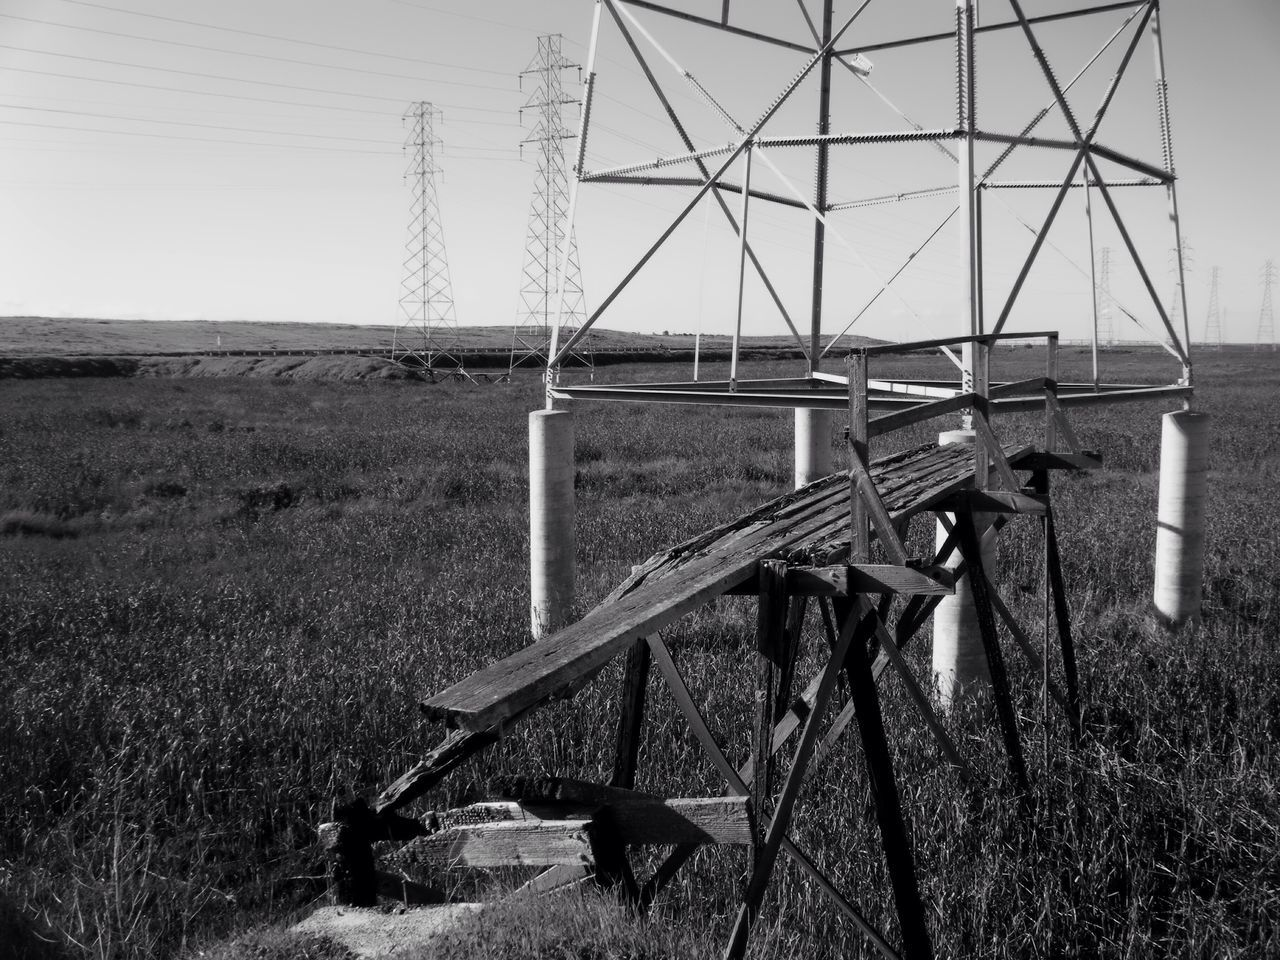 Dilapidated Aged Disrepair Blackandwhite Black And White San Francisco Bay Marsh Wetlands California Electricity Pylon Connection Field Cable Day Sky No People Nature Landscape Outdoors Grass No Budget Photography the server must be in Fremot, it's another city